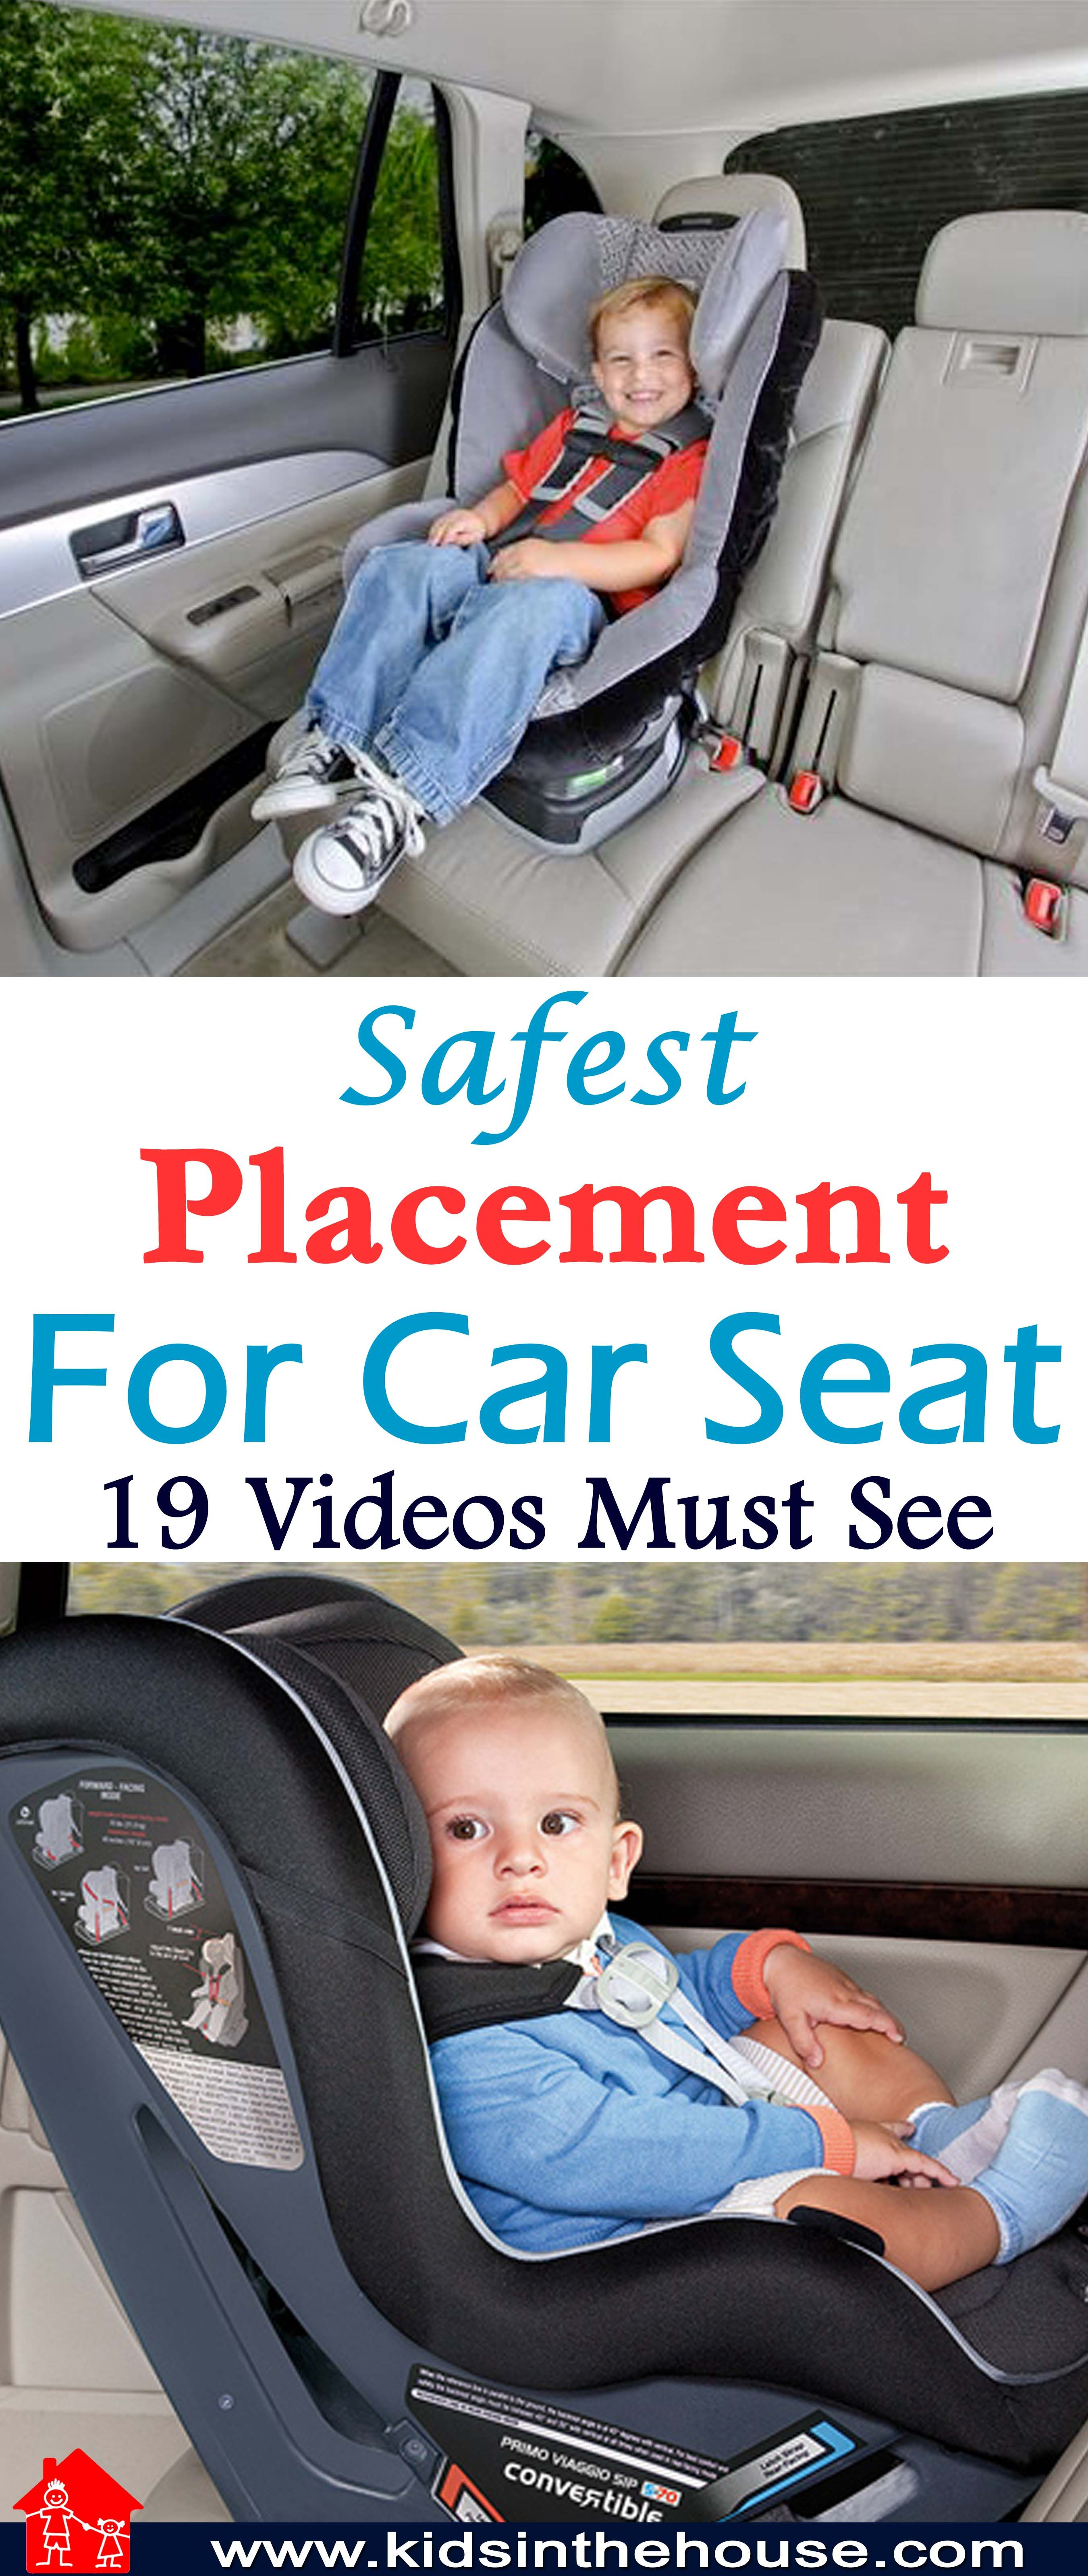 The Safest Place In Any Vehicle Is The Back Seat Center Rear So